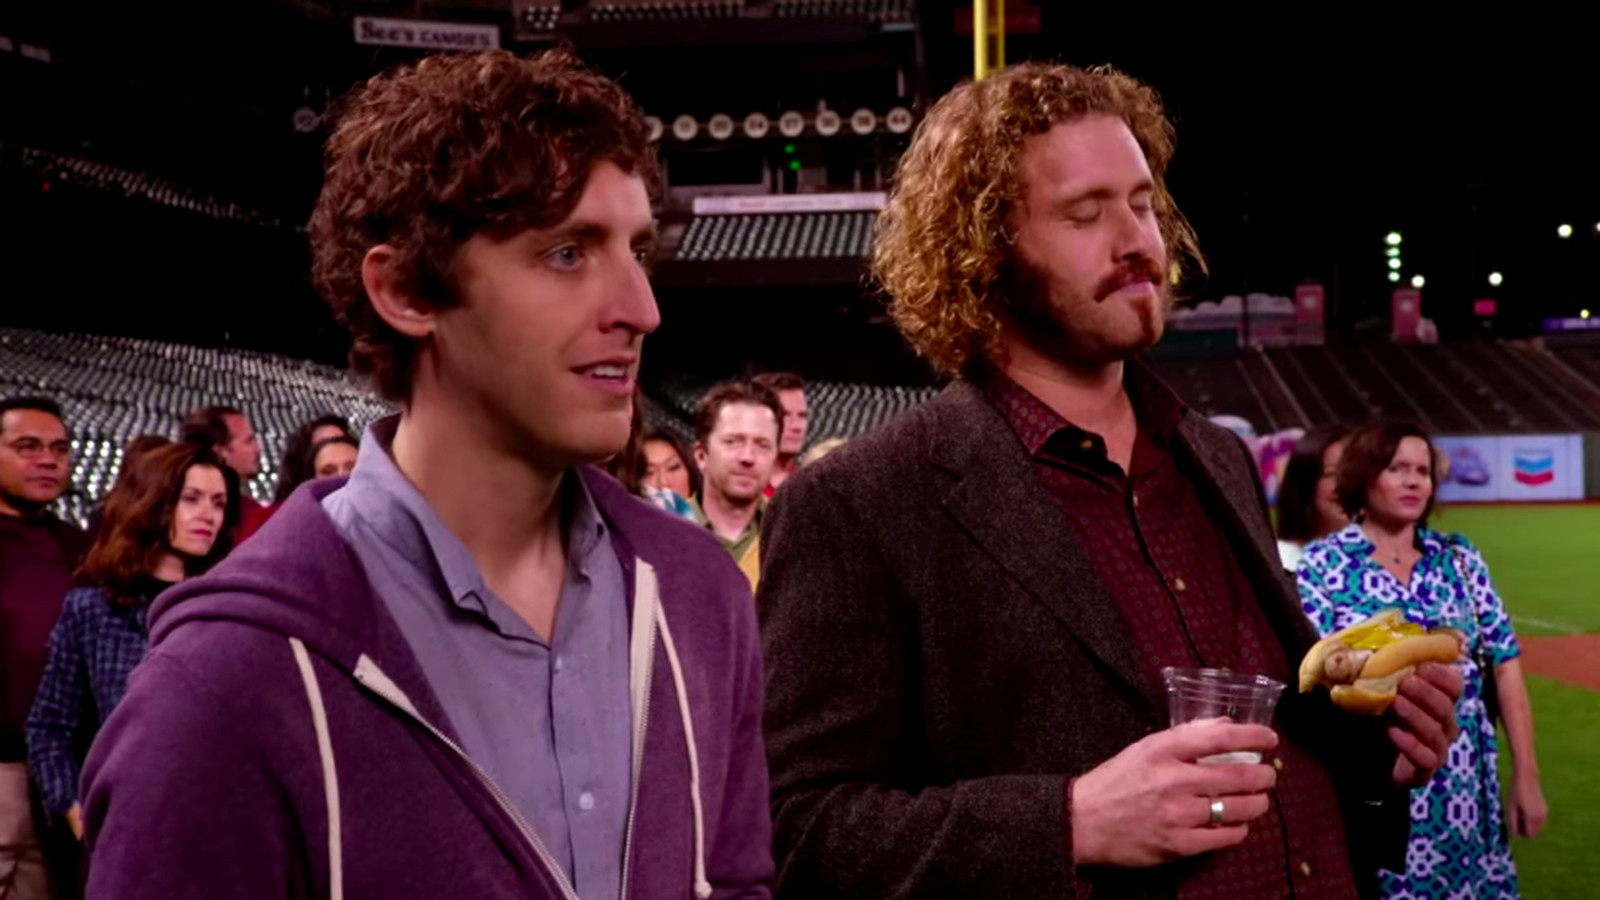 T.J. Miller won't be returning for the next season of Silicon Valley